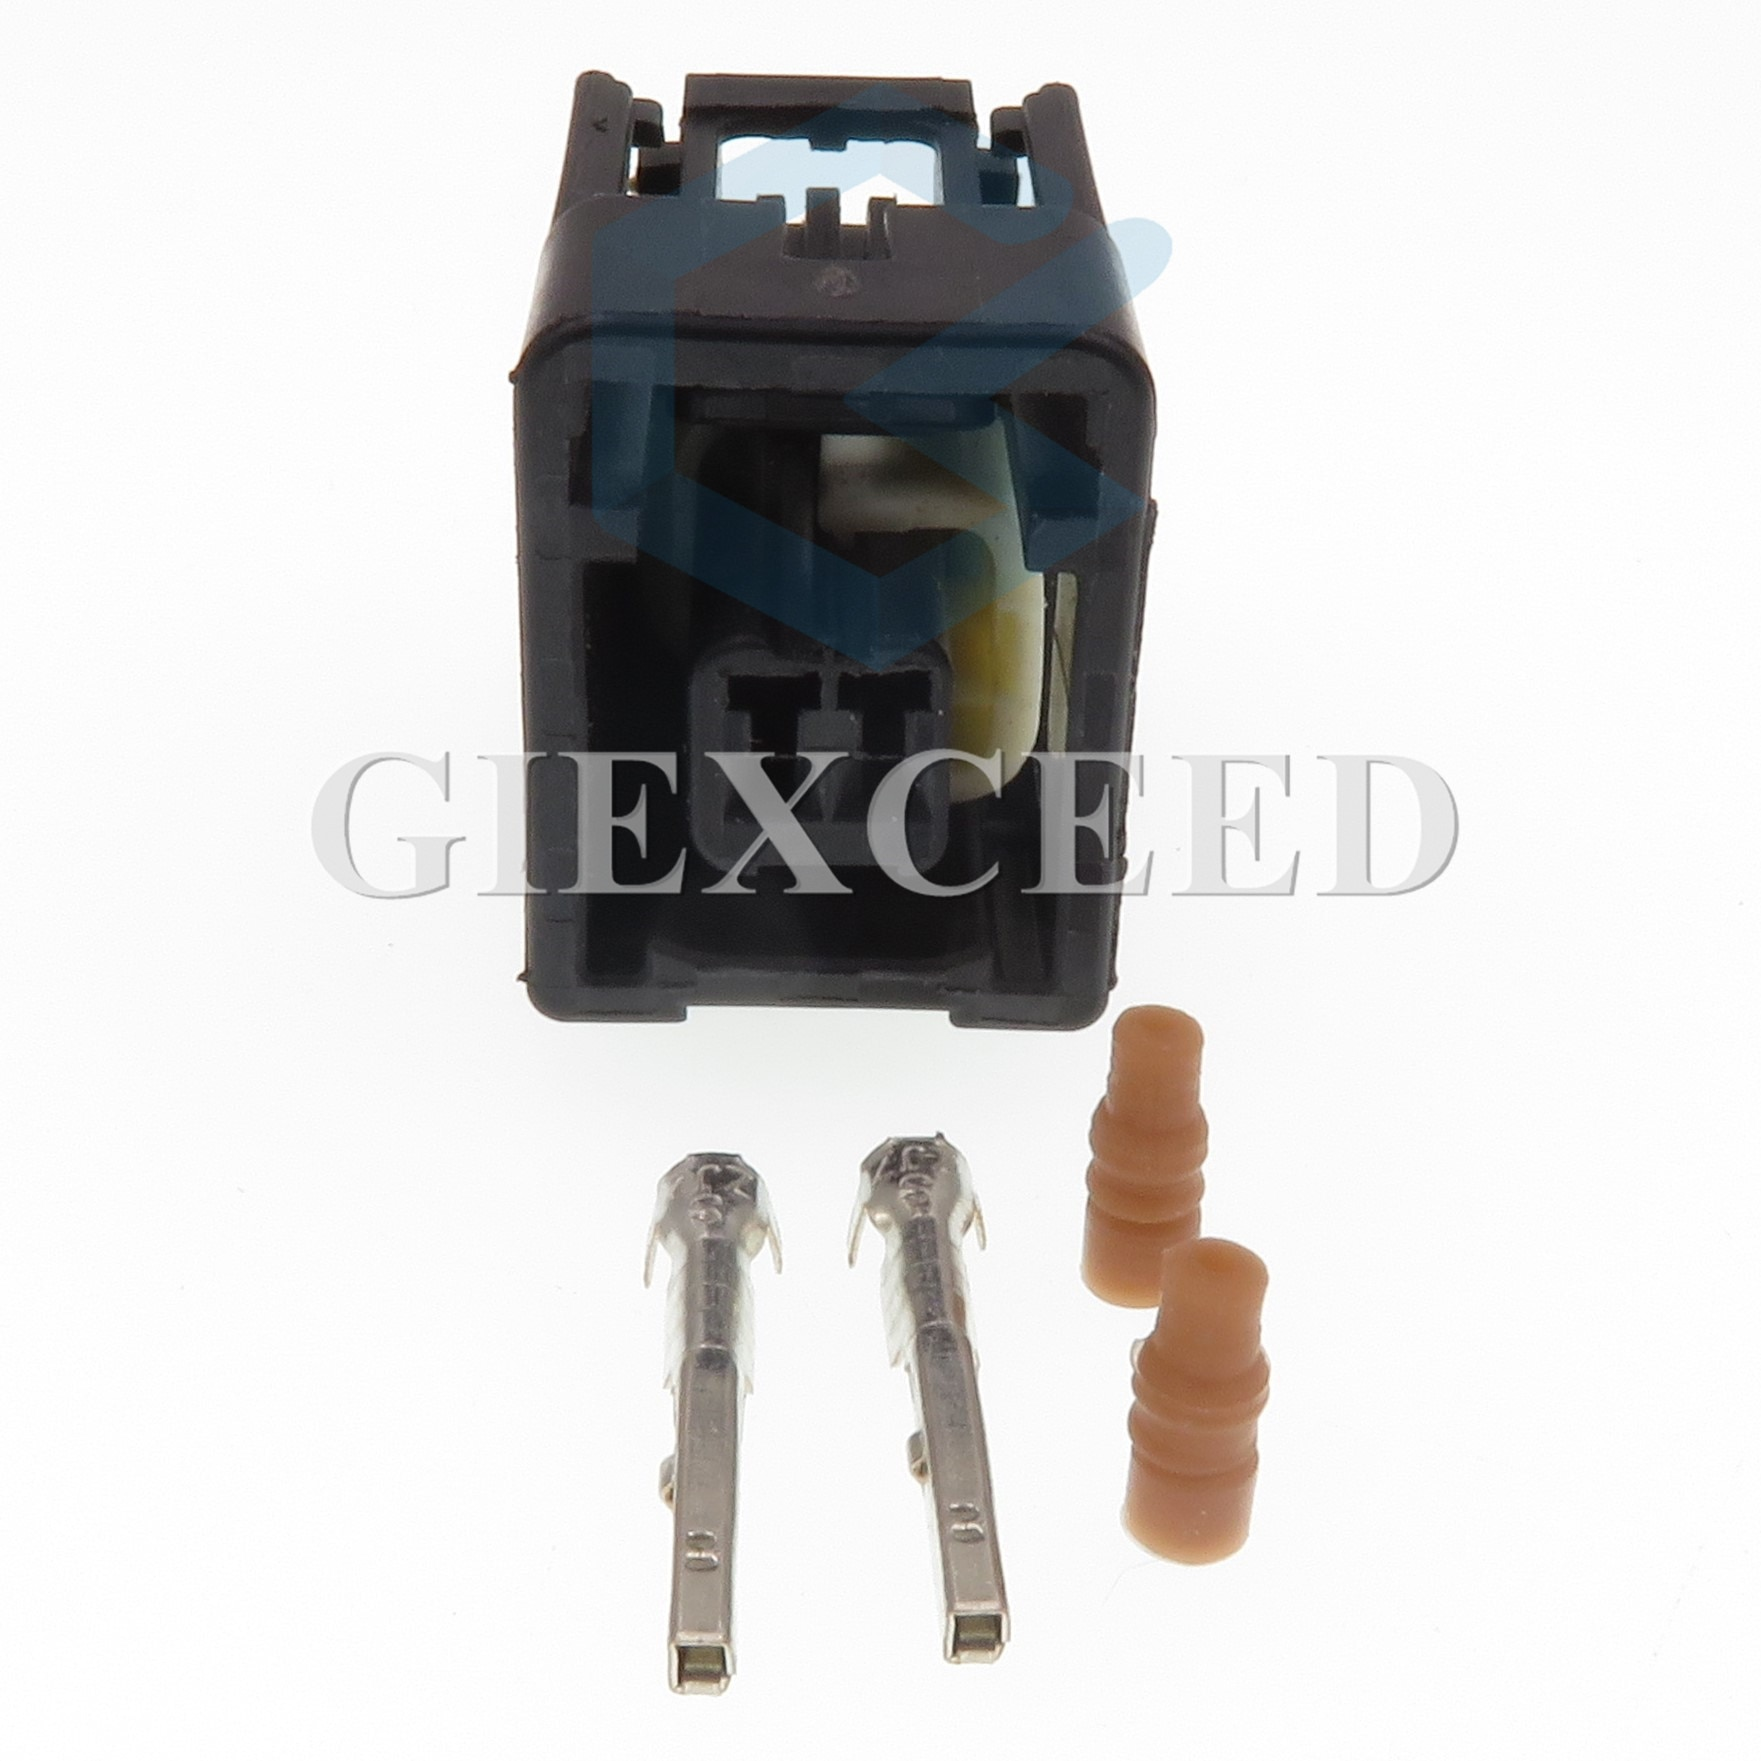 2 Sets 2 Pin 7283-6078-30 Female Automotive Connector Waterproof Wire Connectors